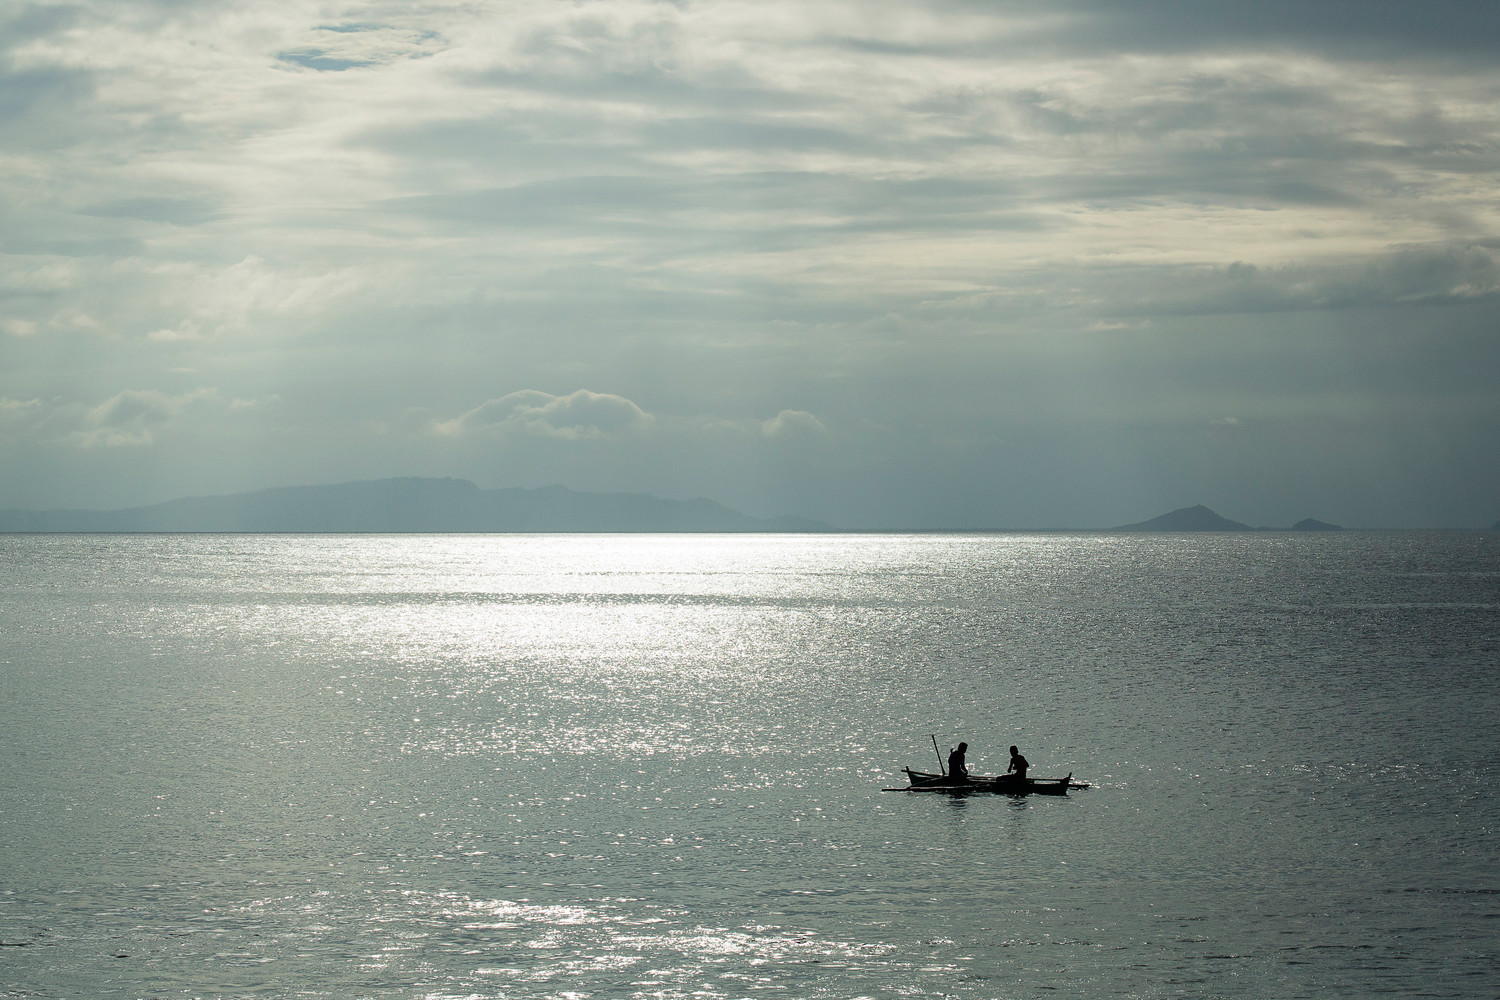 In this 2014 file photo, fishermen are seen in a boat near Guiuan, Philippines. To date, the social action arm of the Catholic Church has been able to help about 1.8 million people affected by the destruction brought by Typhoon Haiyan that struck the central Philippines in 2013.